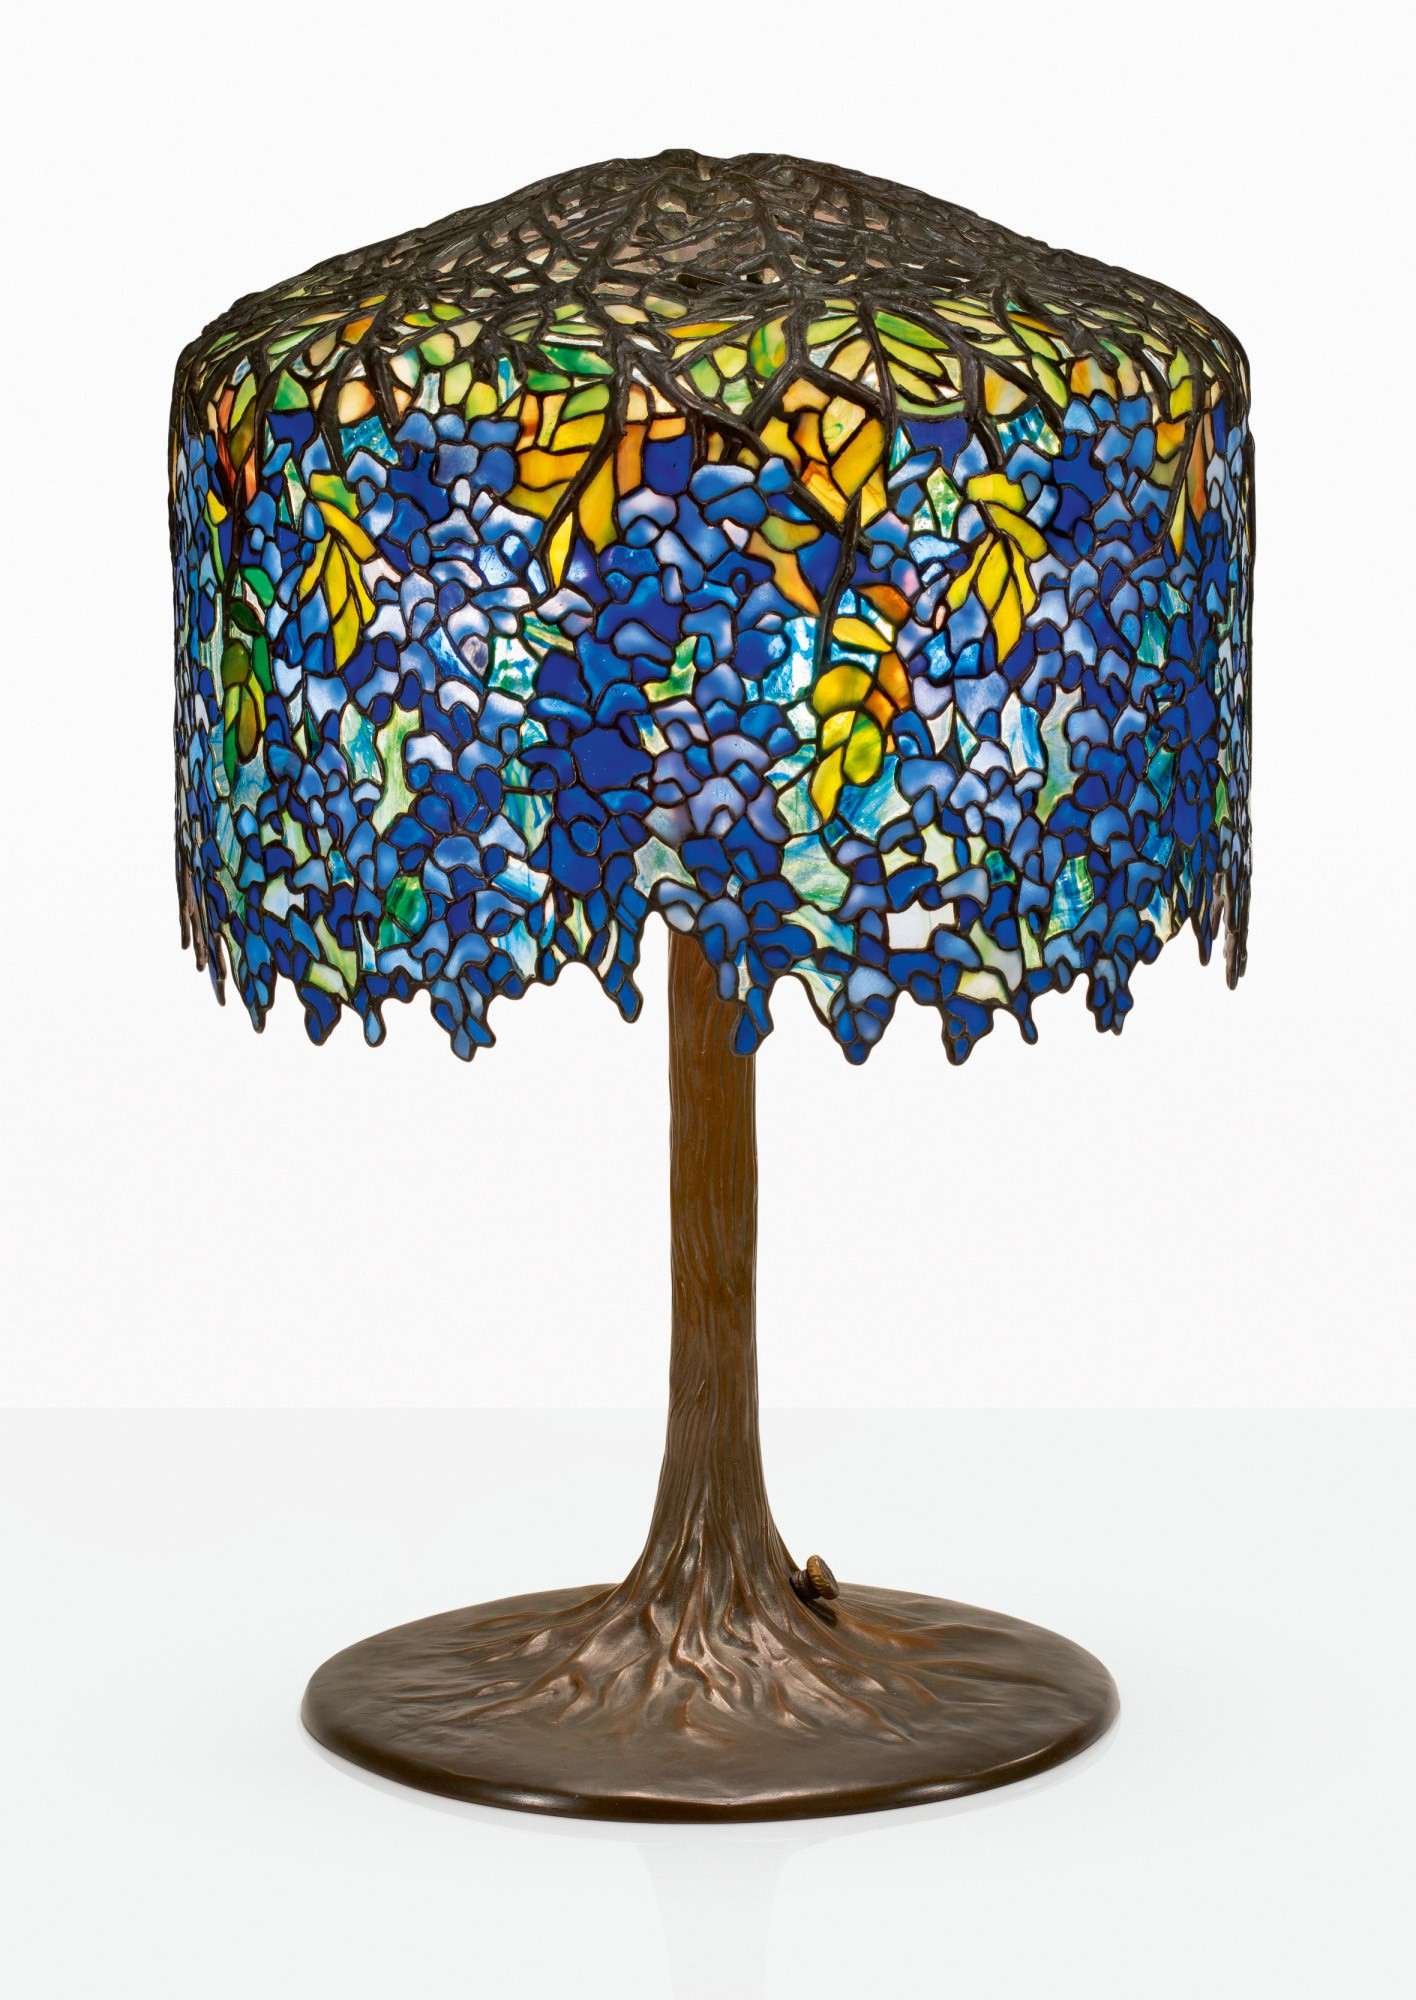 Tiffany Studios Wisteria Table Lamp Important Design Sotheby S